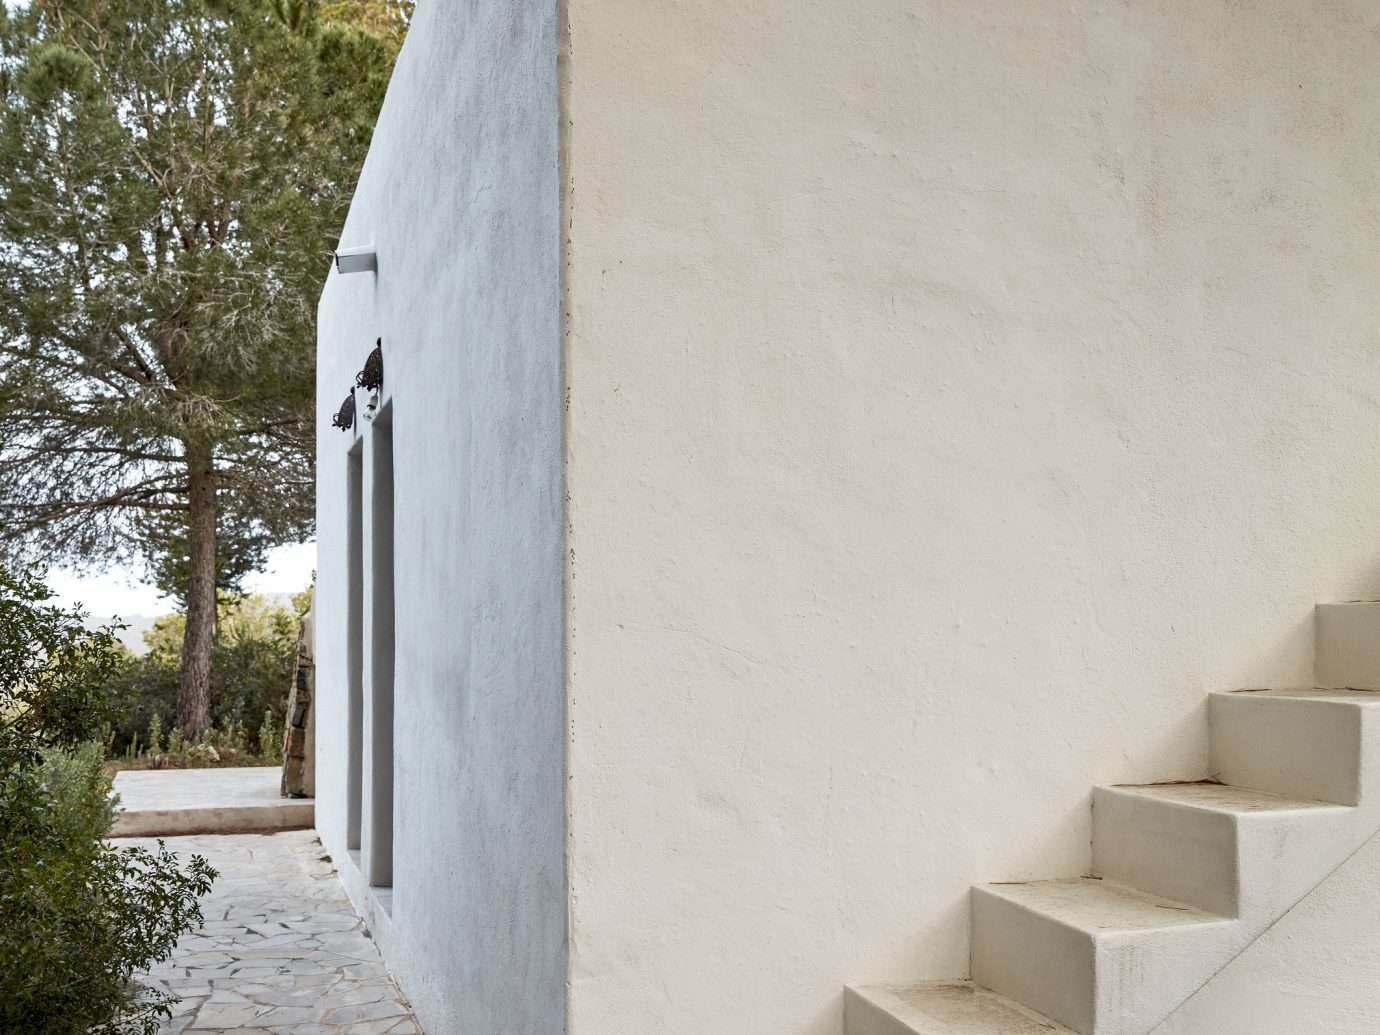 Boutique Hotels Hotels Luxury Travel Meditation Retreats Spa Retreats Trip Ideas Yoga Retreats outdoor house building wall Architecture facade stone wood daylighting cement concrete material stair step